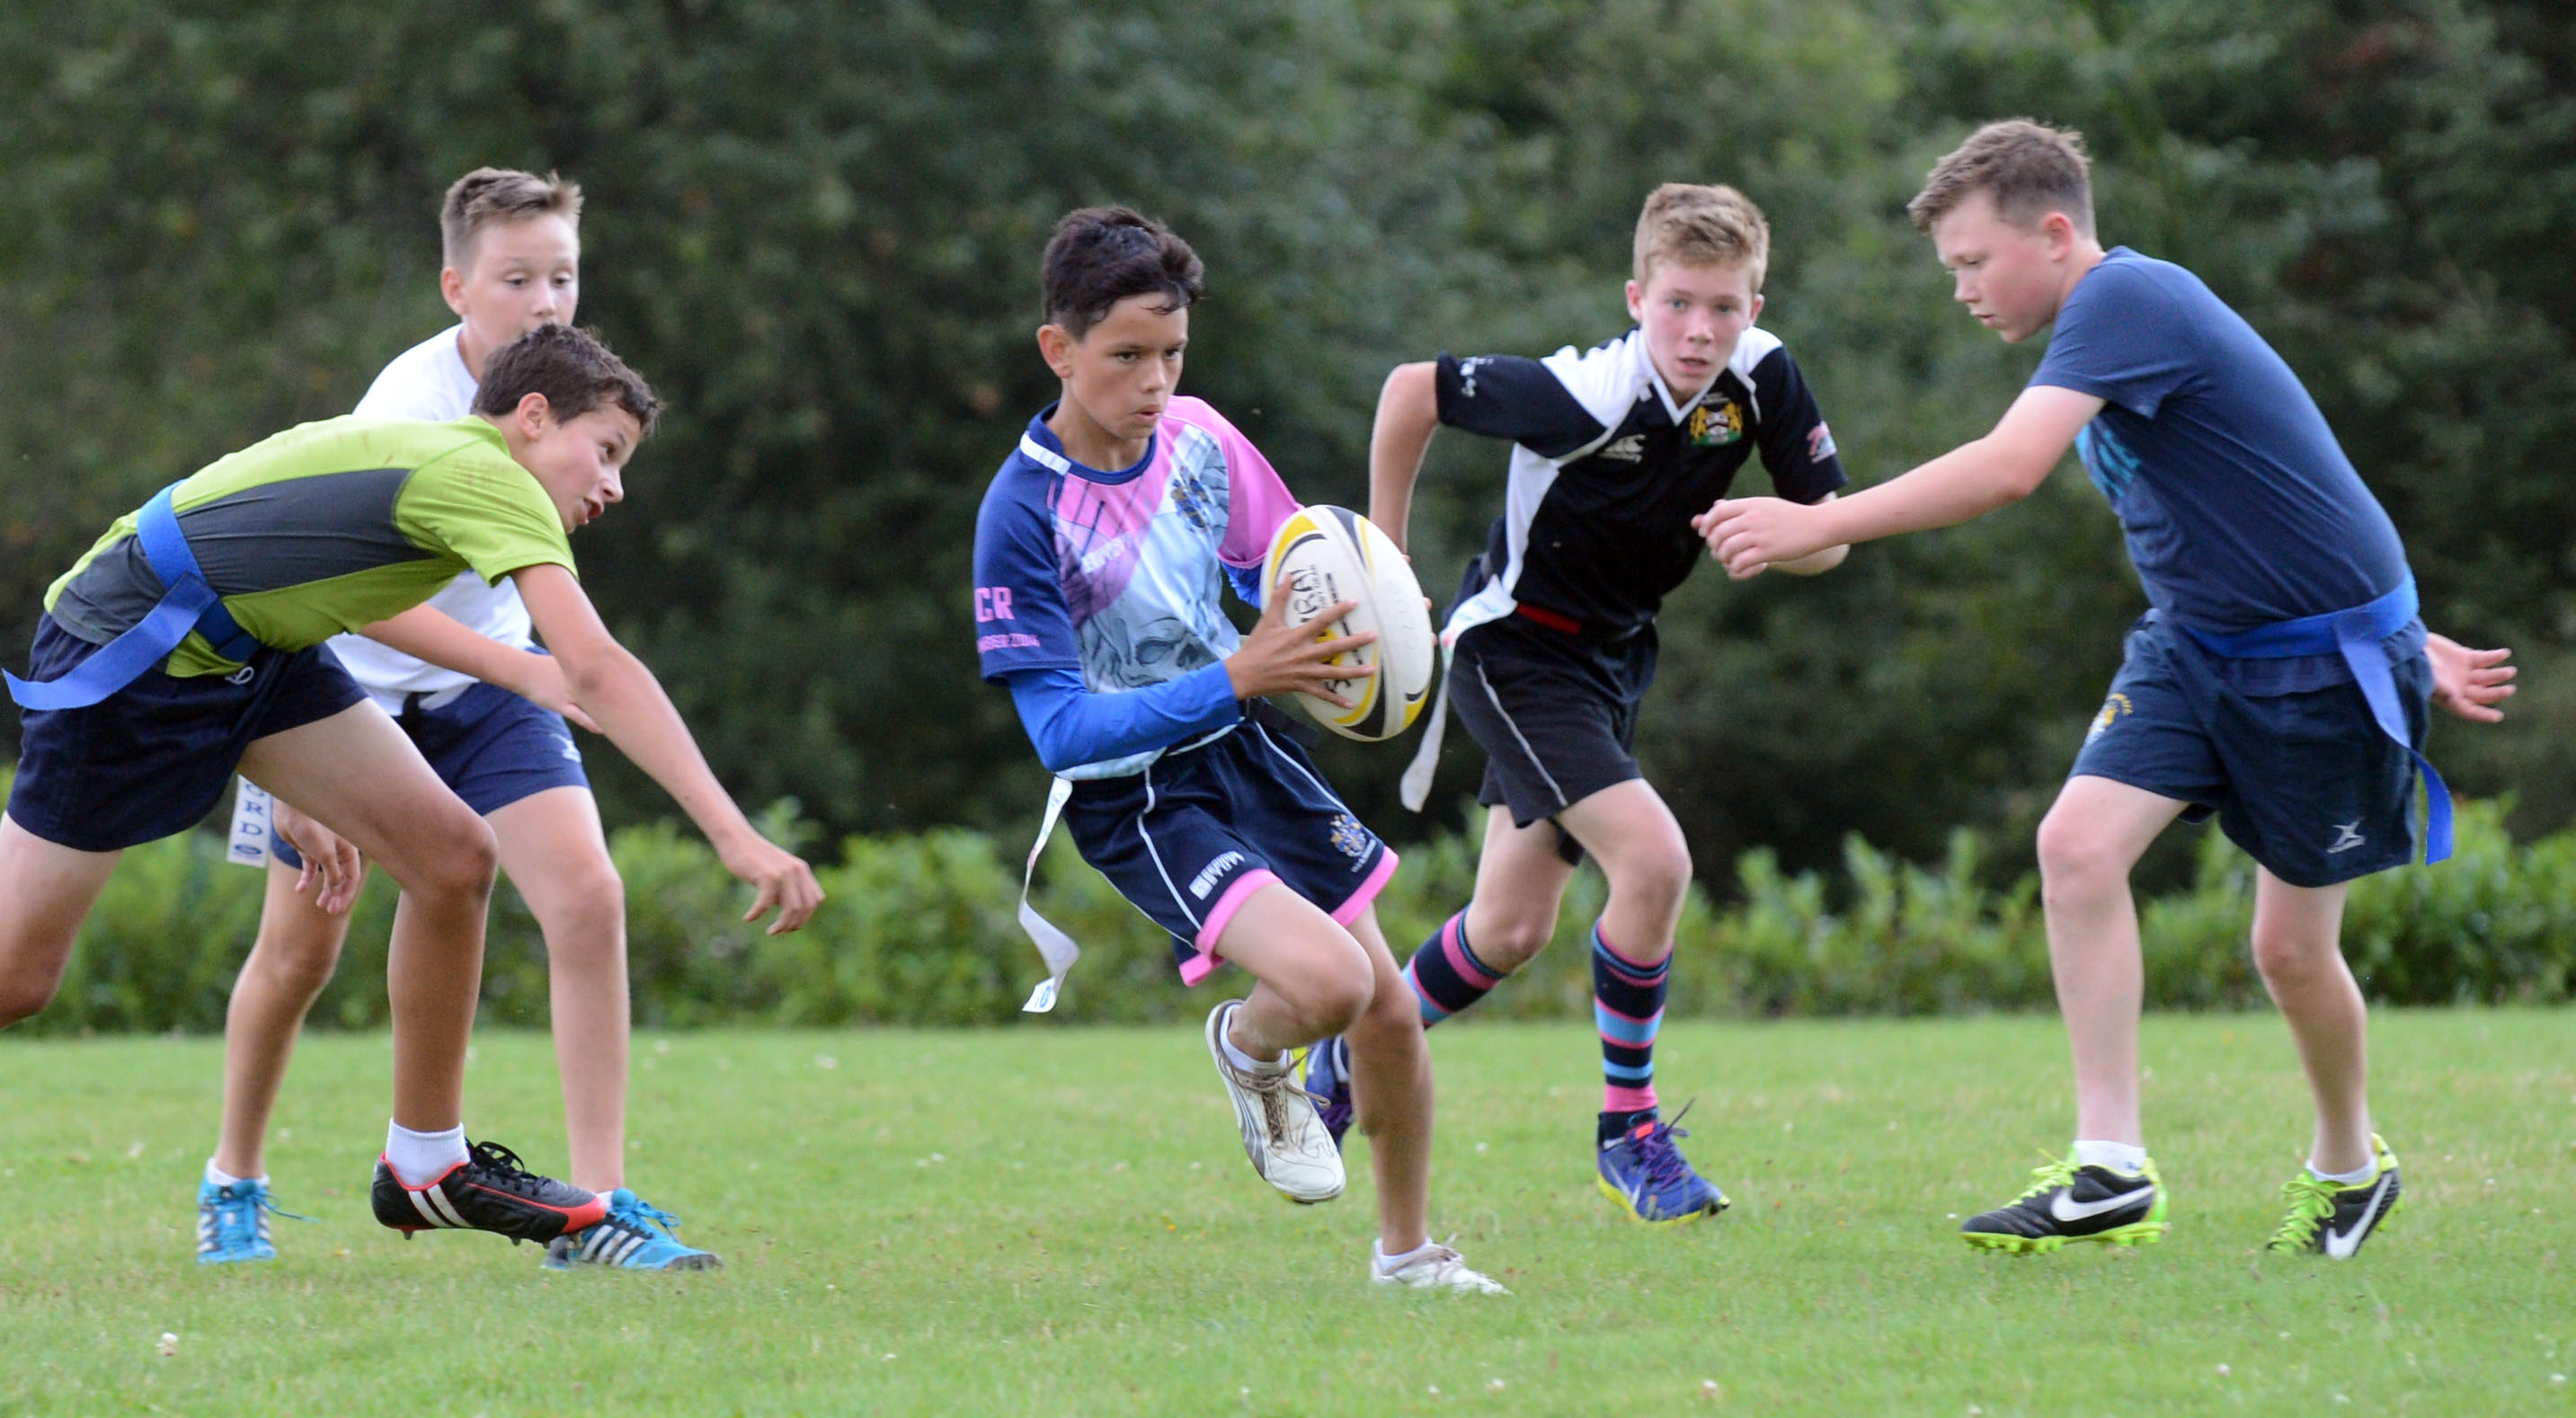 Rugby Camp Coaching Youth